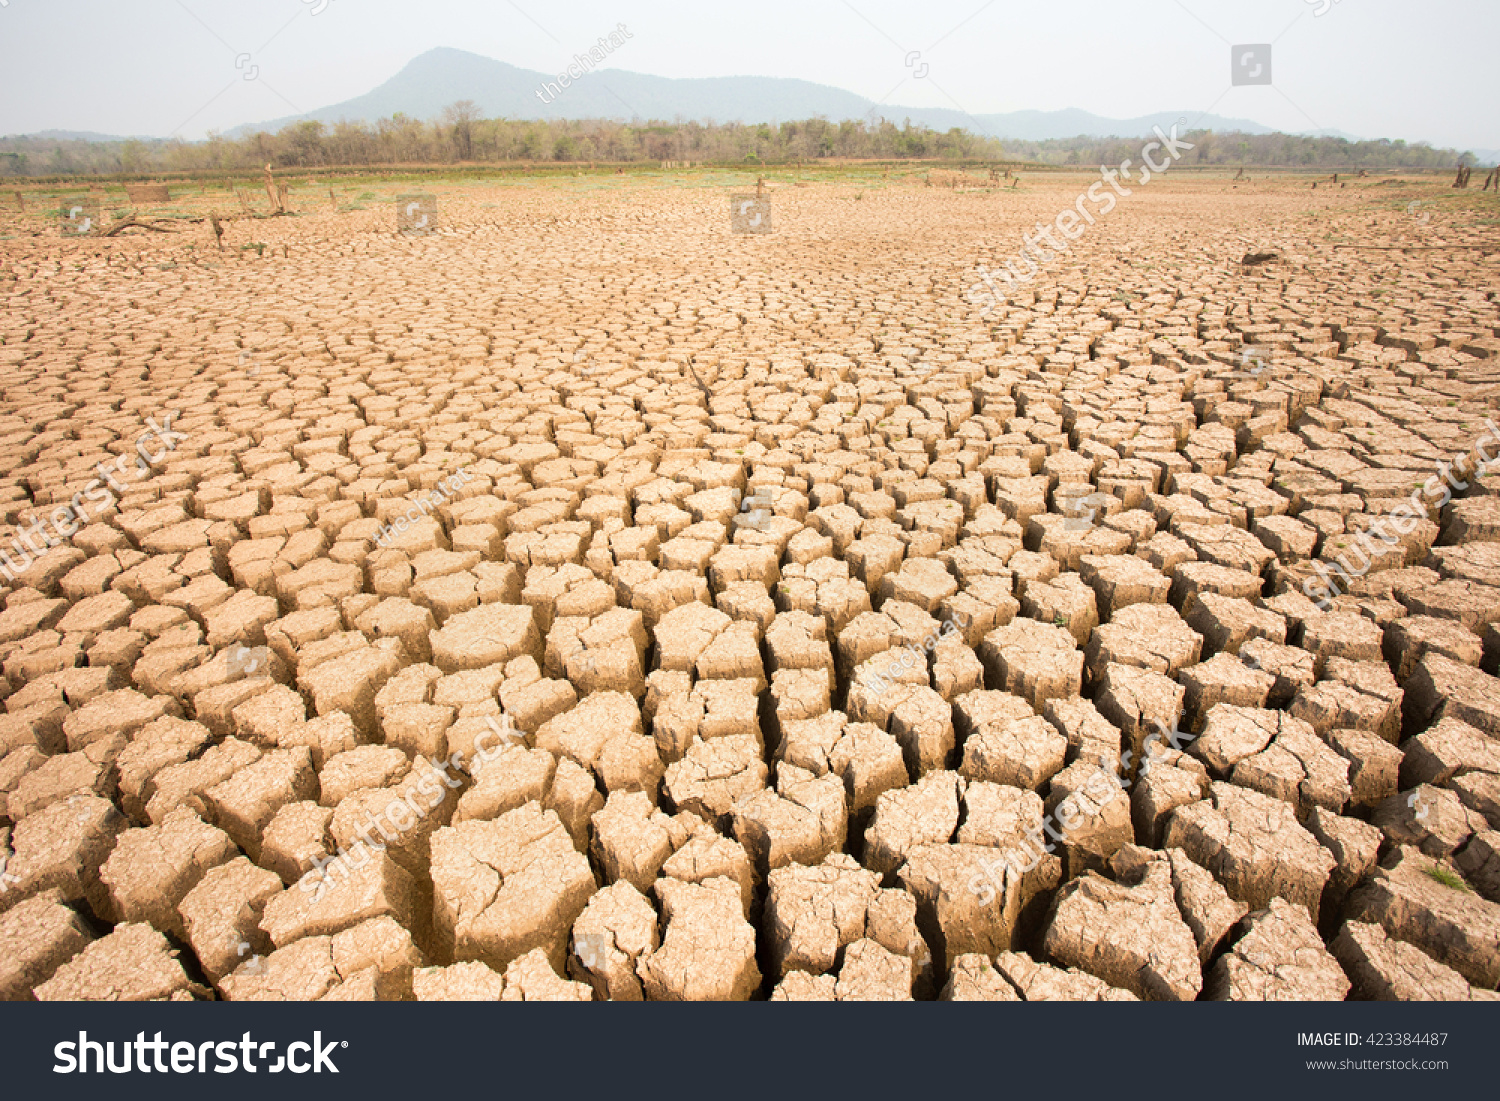 Arid Soil Cracks Stock Photo 423384487 - Shutterstock